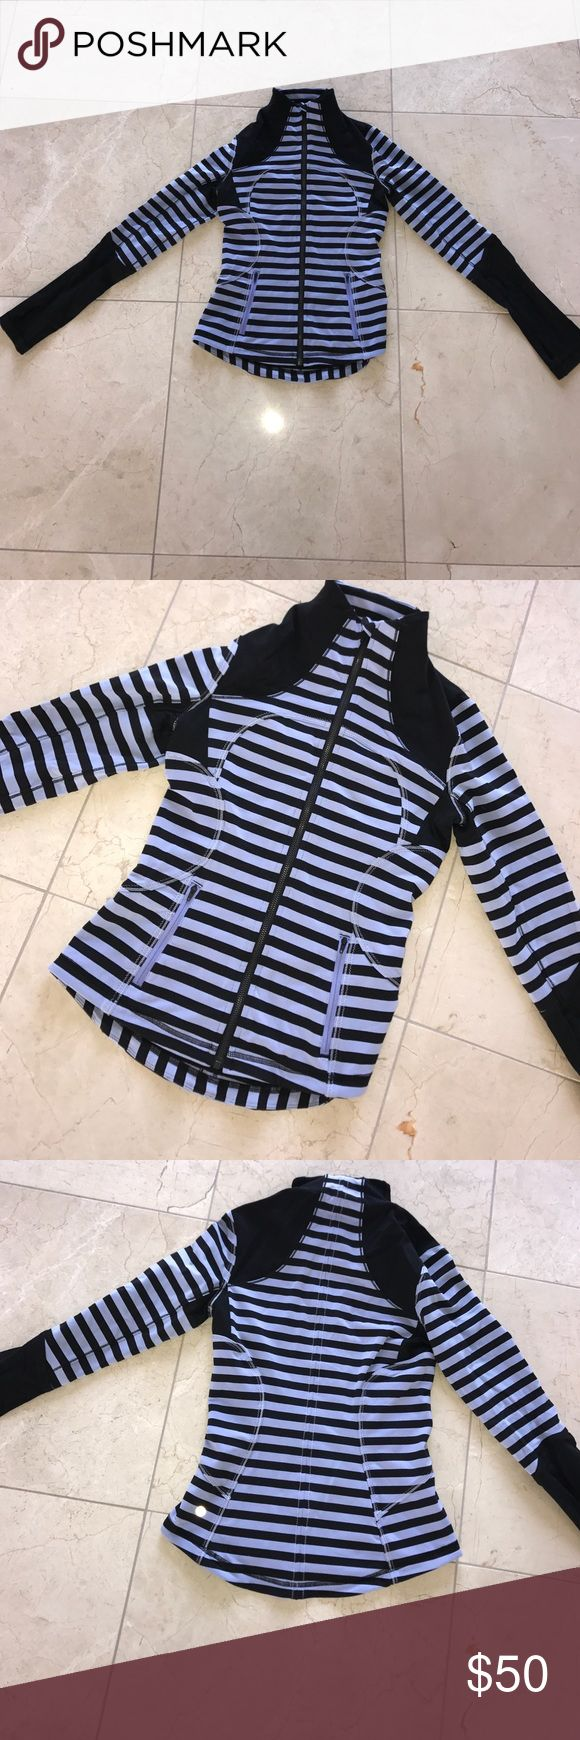 Lululemon Stripe Blue and Black Zip Up Size 4 Worn once Lululemon striped zip up! Size 4- perfect condition! Only looking to sell right now lululemon athletica Tops Tees - Long Sleeve